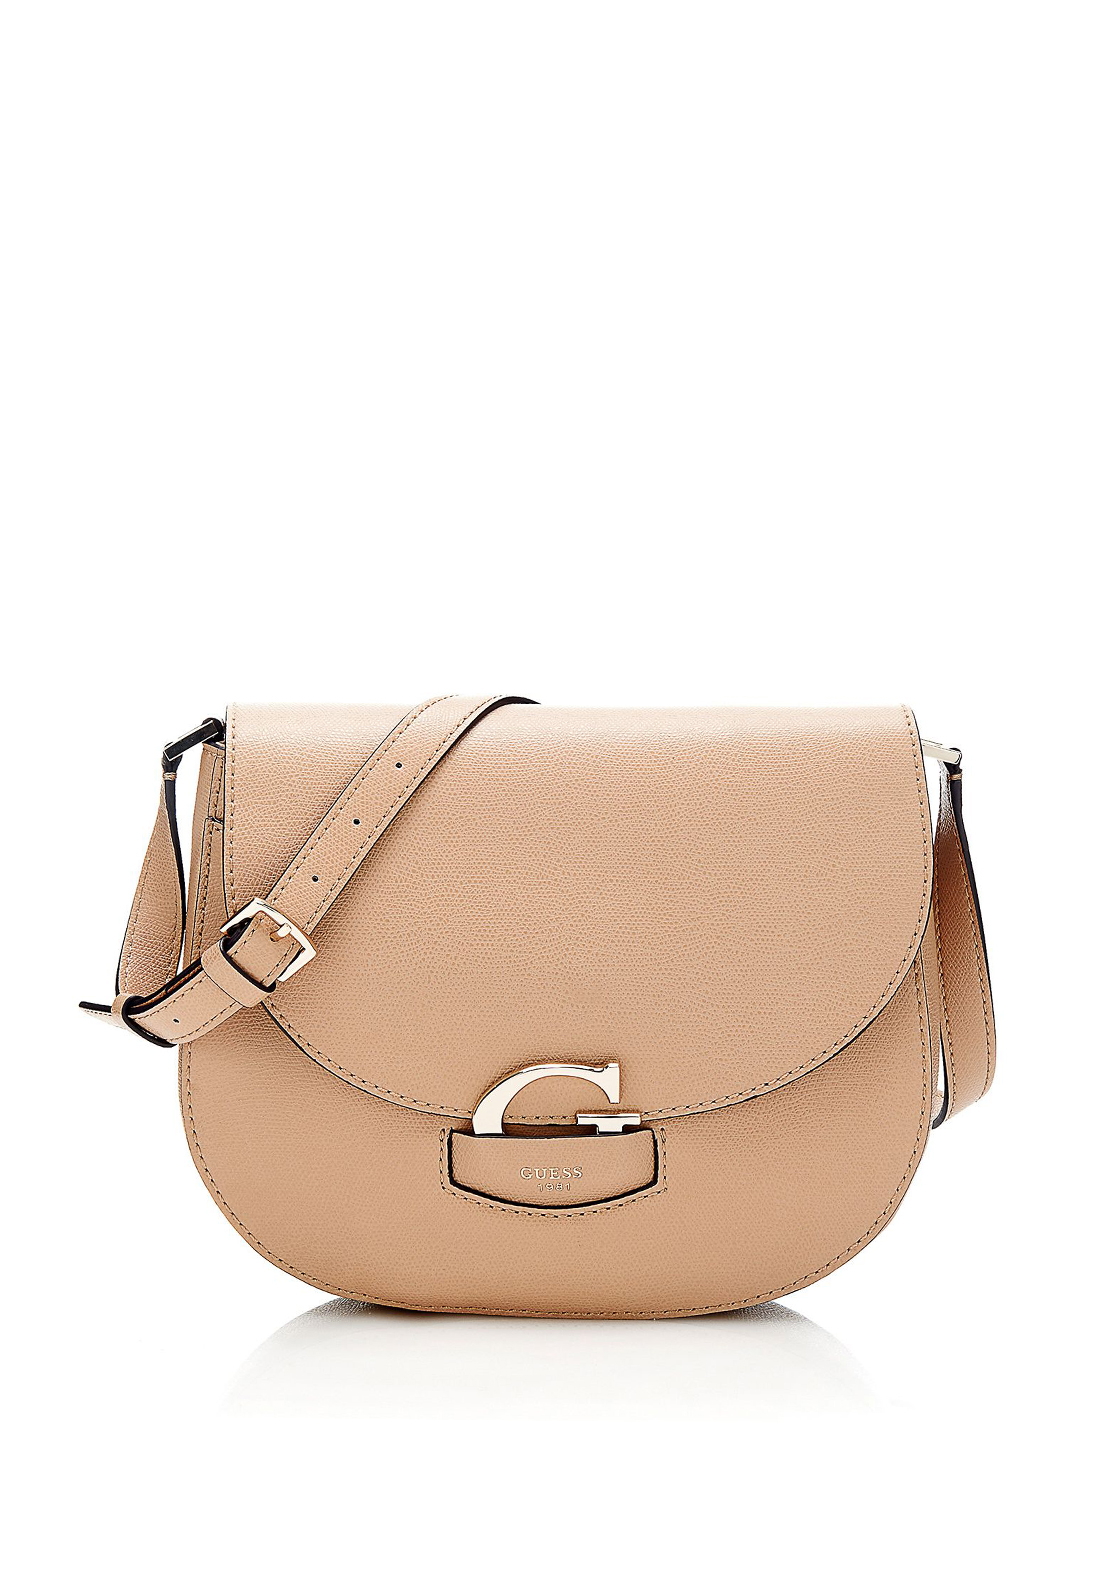 Guess Lexxi Saddle Shoulder Bag, Tan